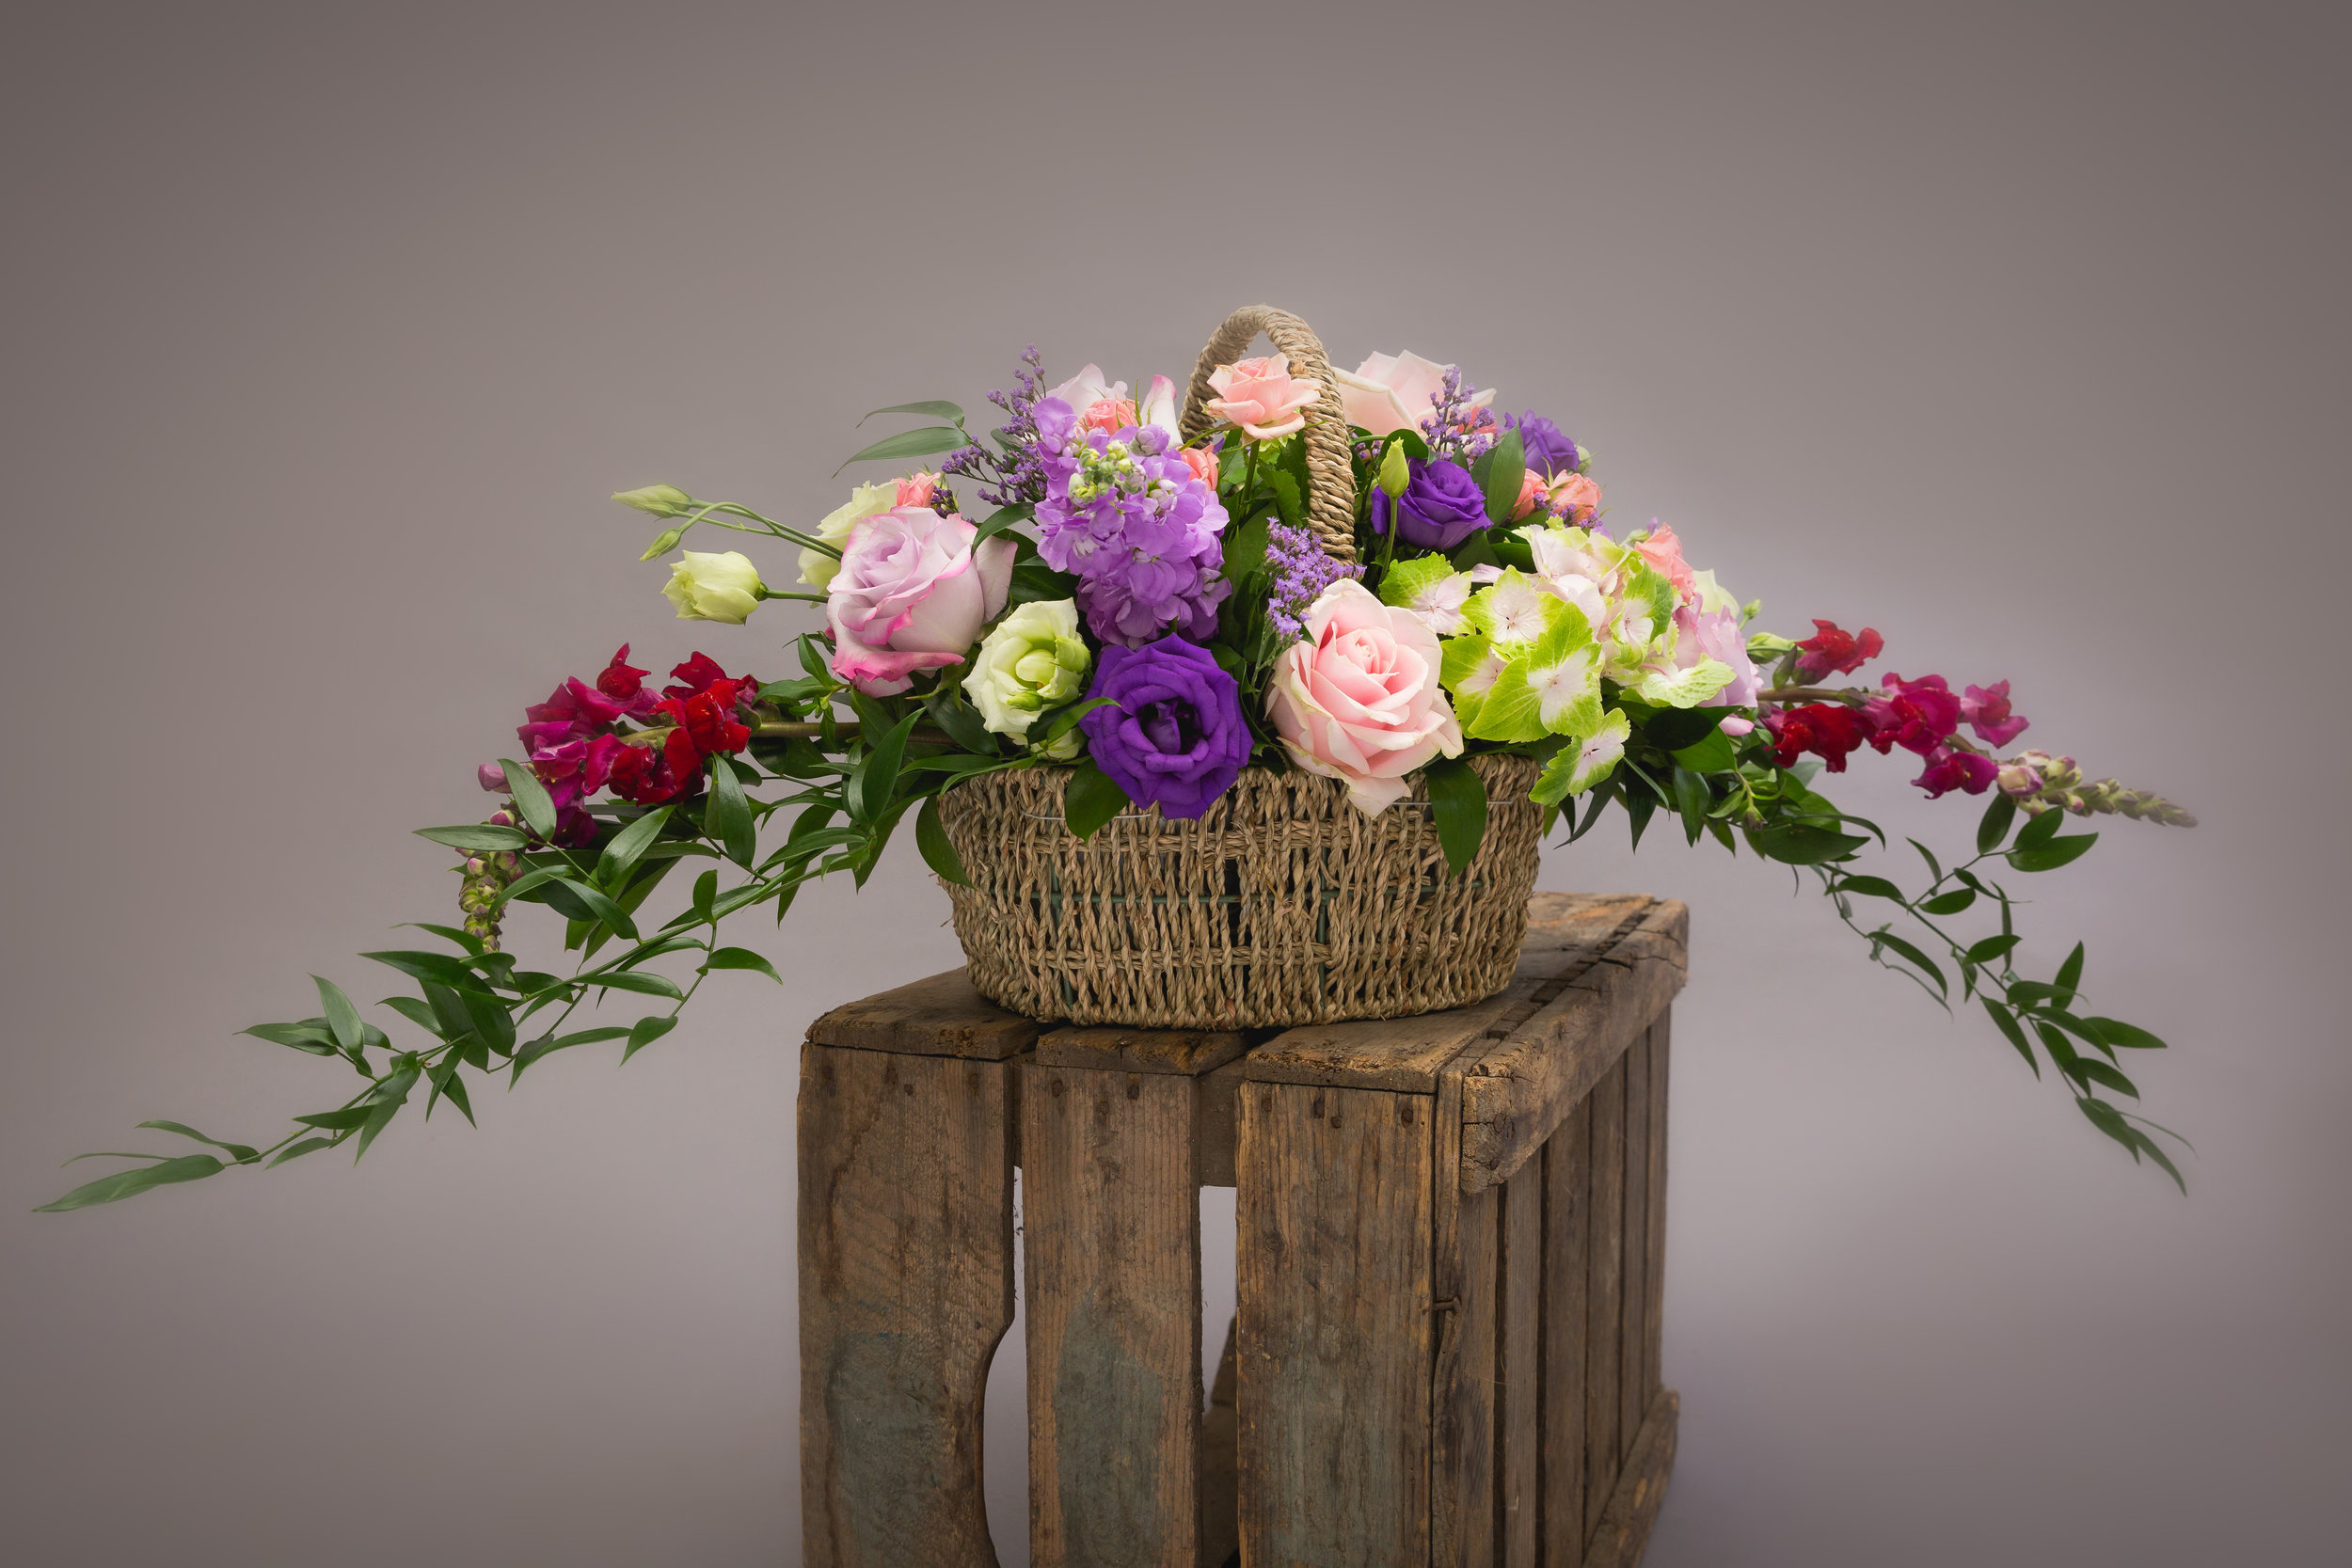 linden-tree-flowers-funeral-product-photography-sussex-58.jpg